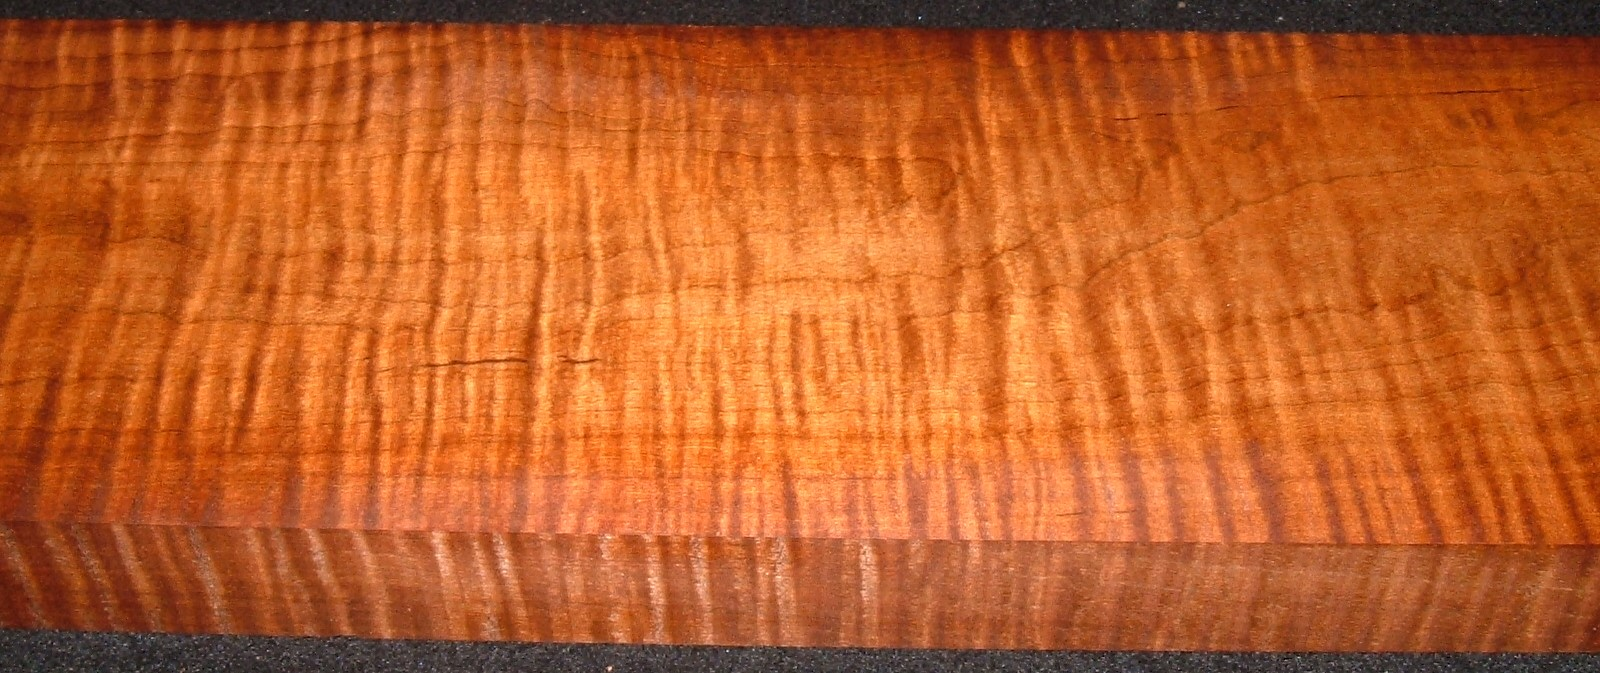 RM2104-118JJ, 1-1/2x5-7/8x40, Roasted Curly Maple